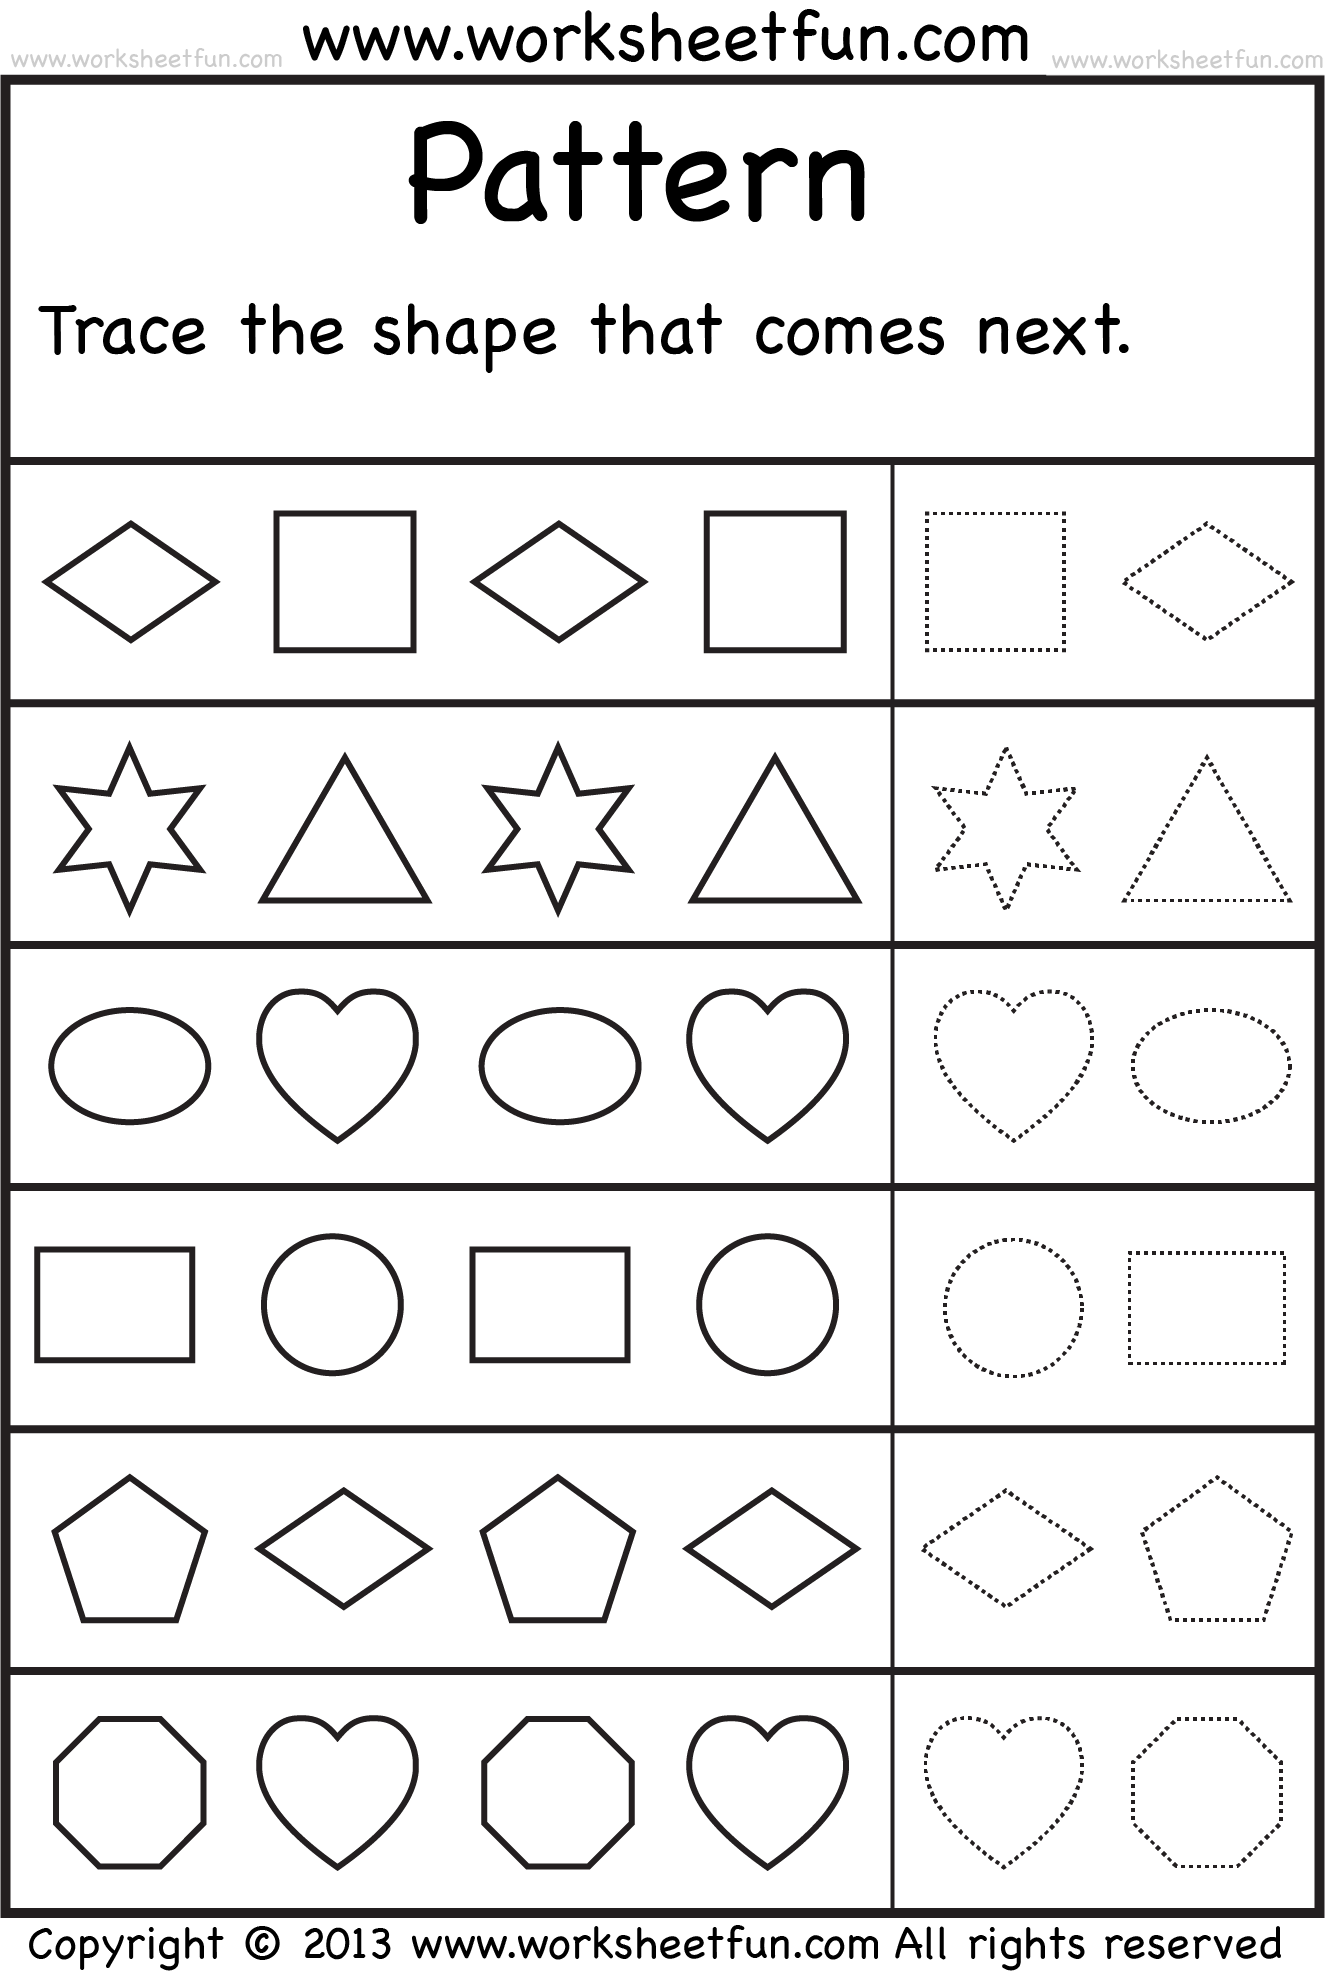 Preschool Printable Pattern Worksheets  1004772